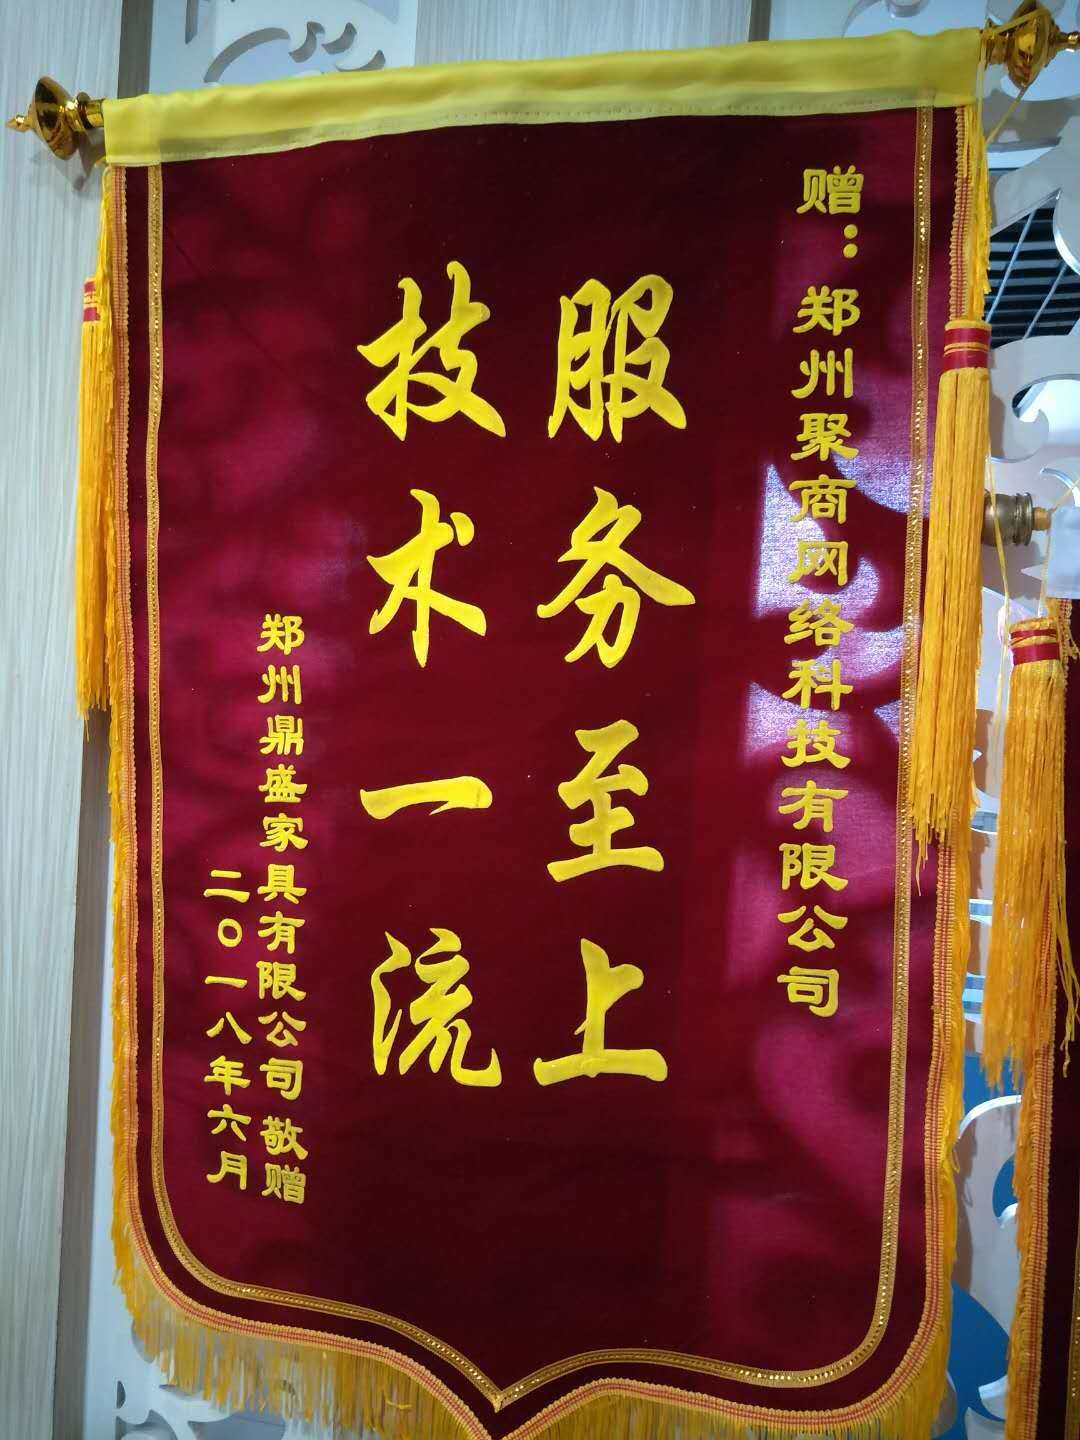 Pennants presented by Zhengzhou Dingsheng Furniture Co., Ltd.